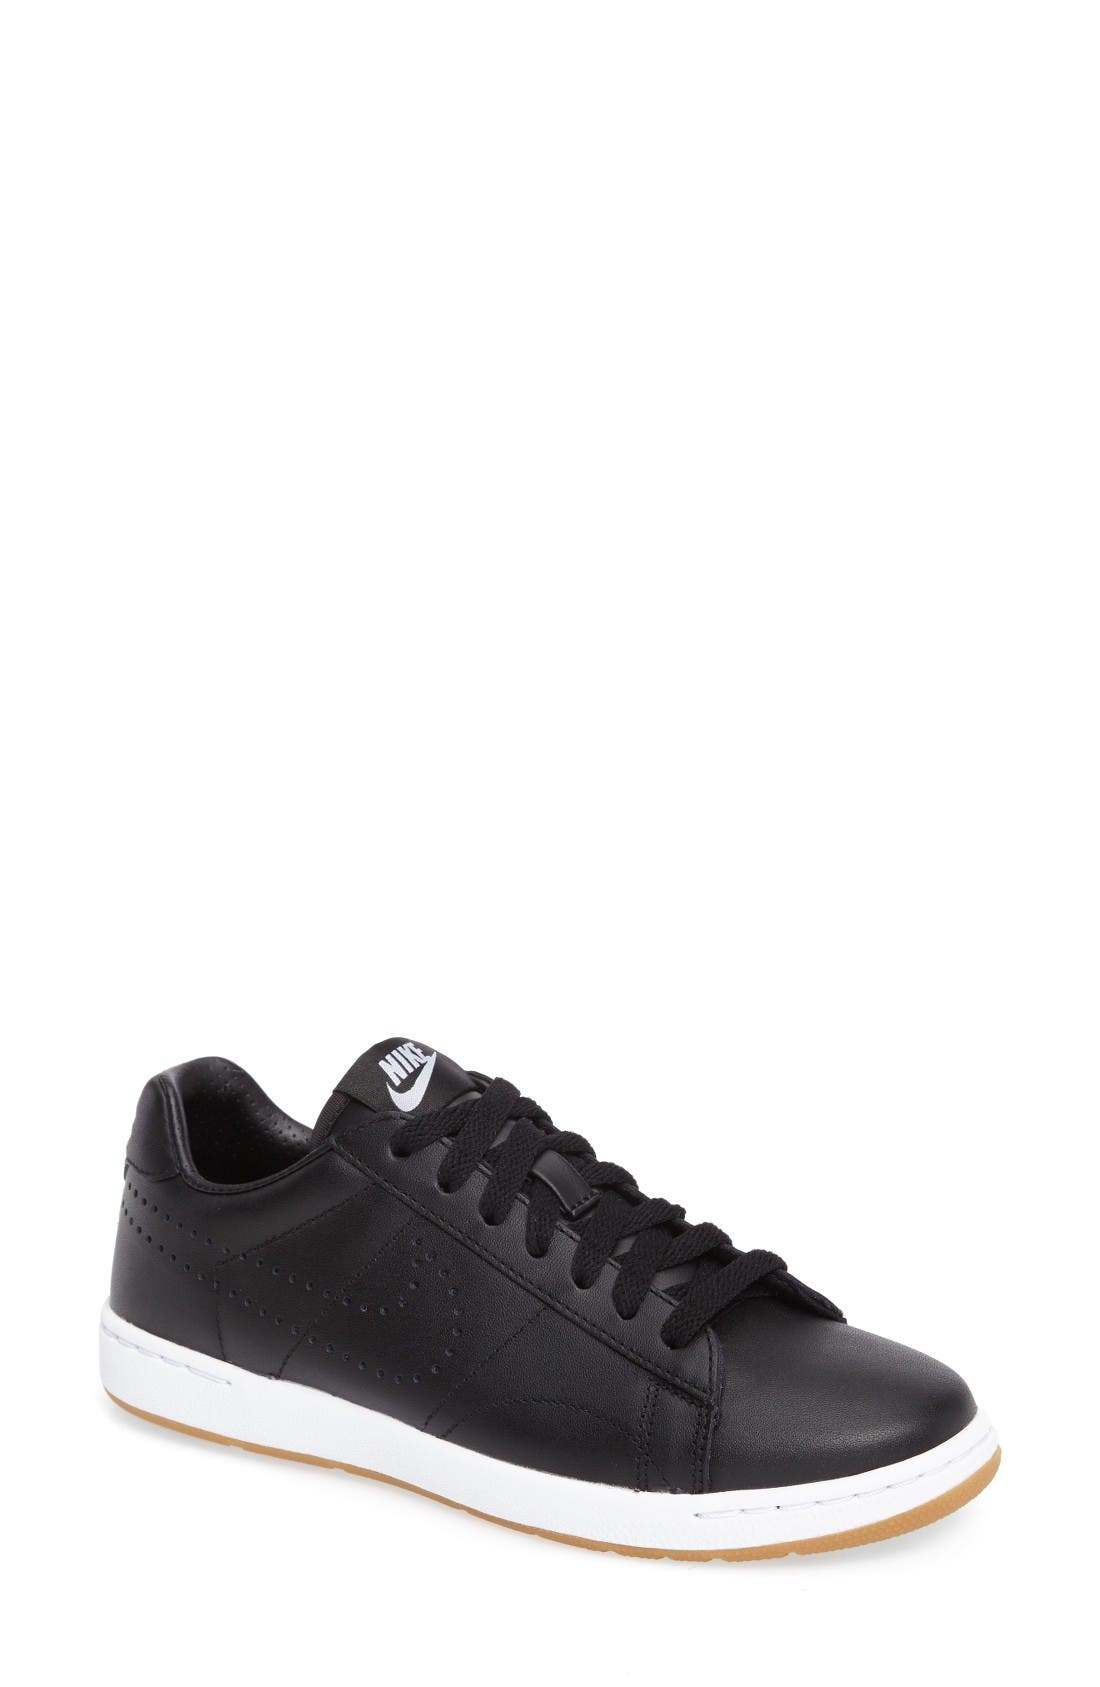 'Classic Ultra' Leather Sneaker,                             Main thumbnail 1, color,                             Black/ White/ Brown